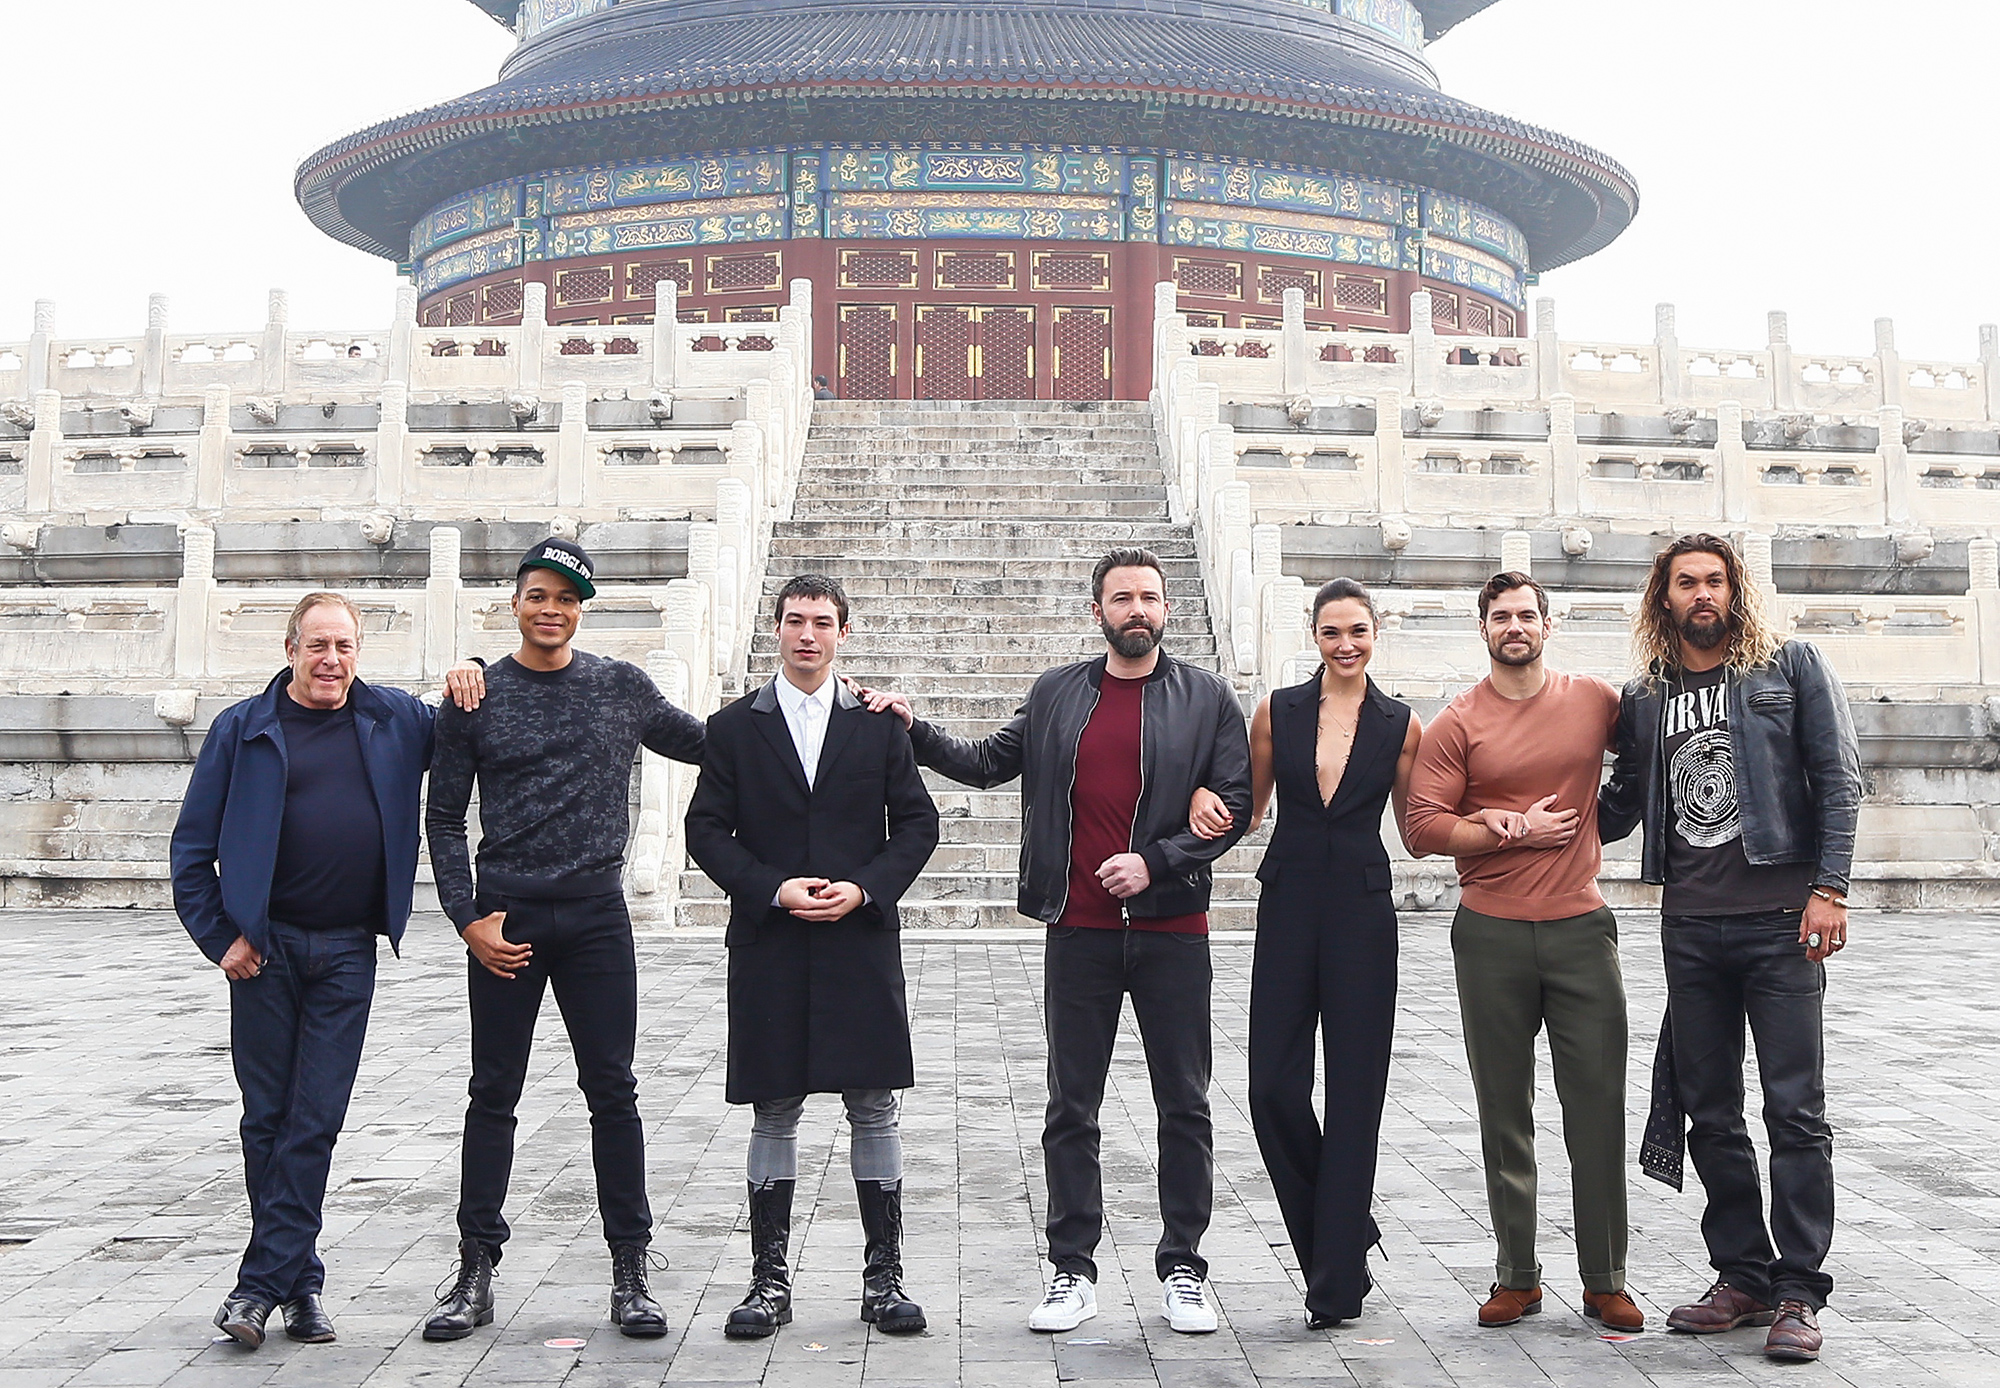 """Stars Of """"Justice League"""" Visit Temple Of Heaven In Beijing"""